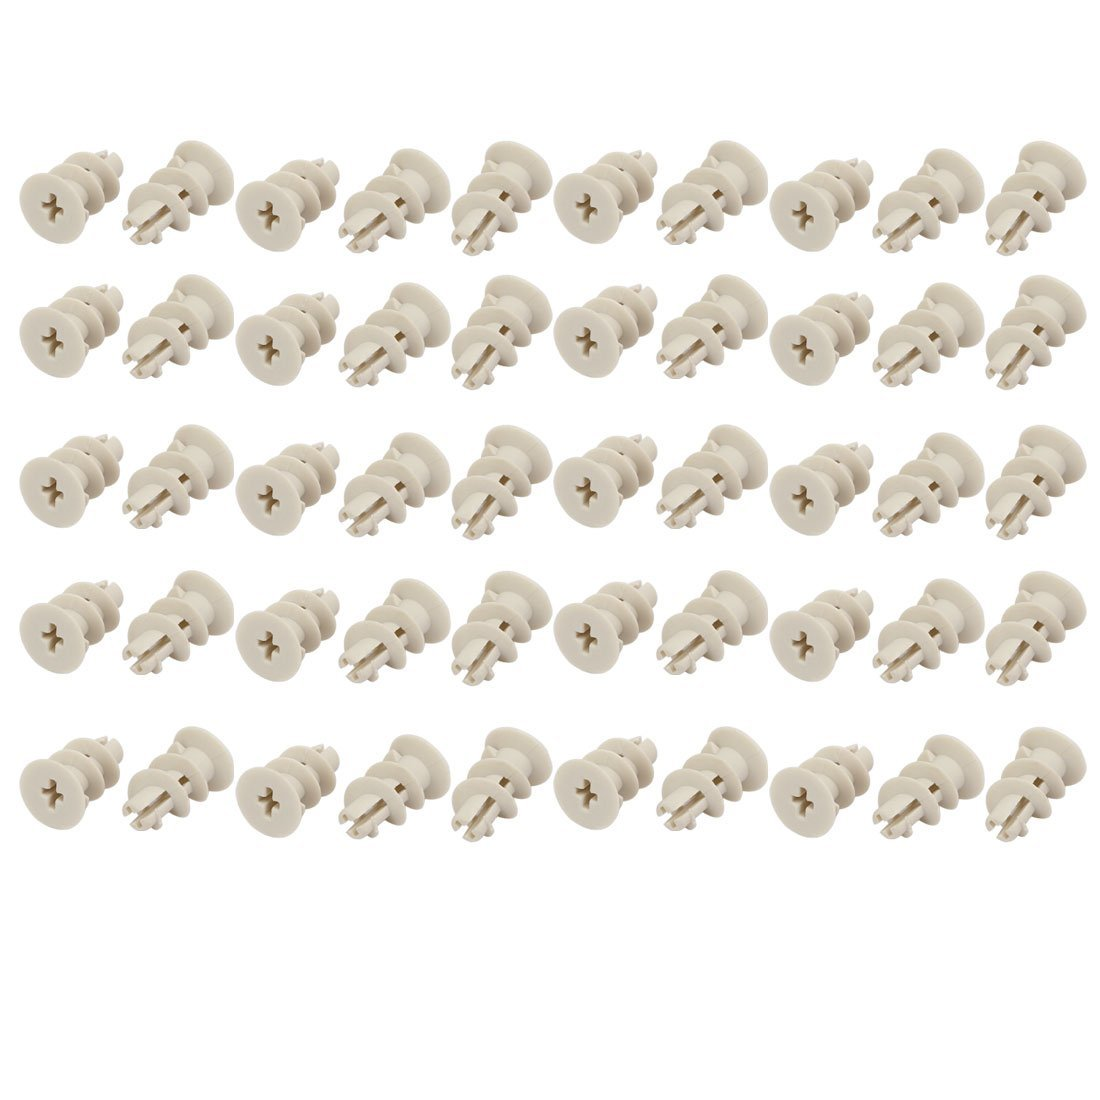 uxcell M4 x 30mm Screw Nylon Self Drilling Drywall Hollow-Wall Anchor 50 Sets